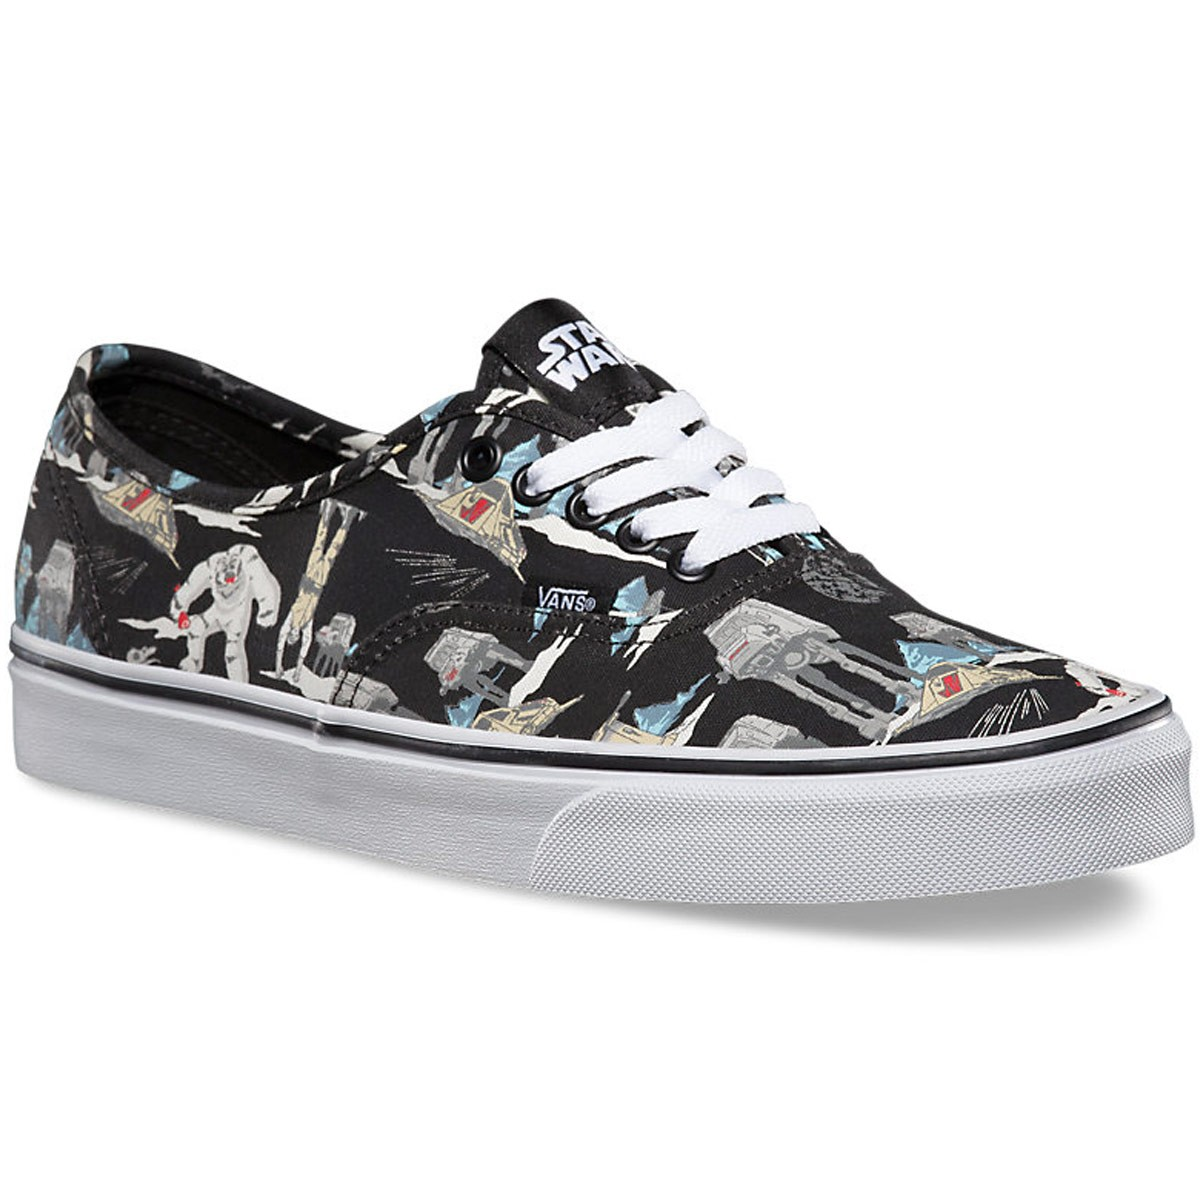 672ef6a4605568 Vans Star Wars Authentic Shoes - Dark Side Planet Hoth - 7.0